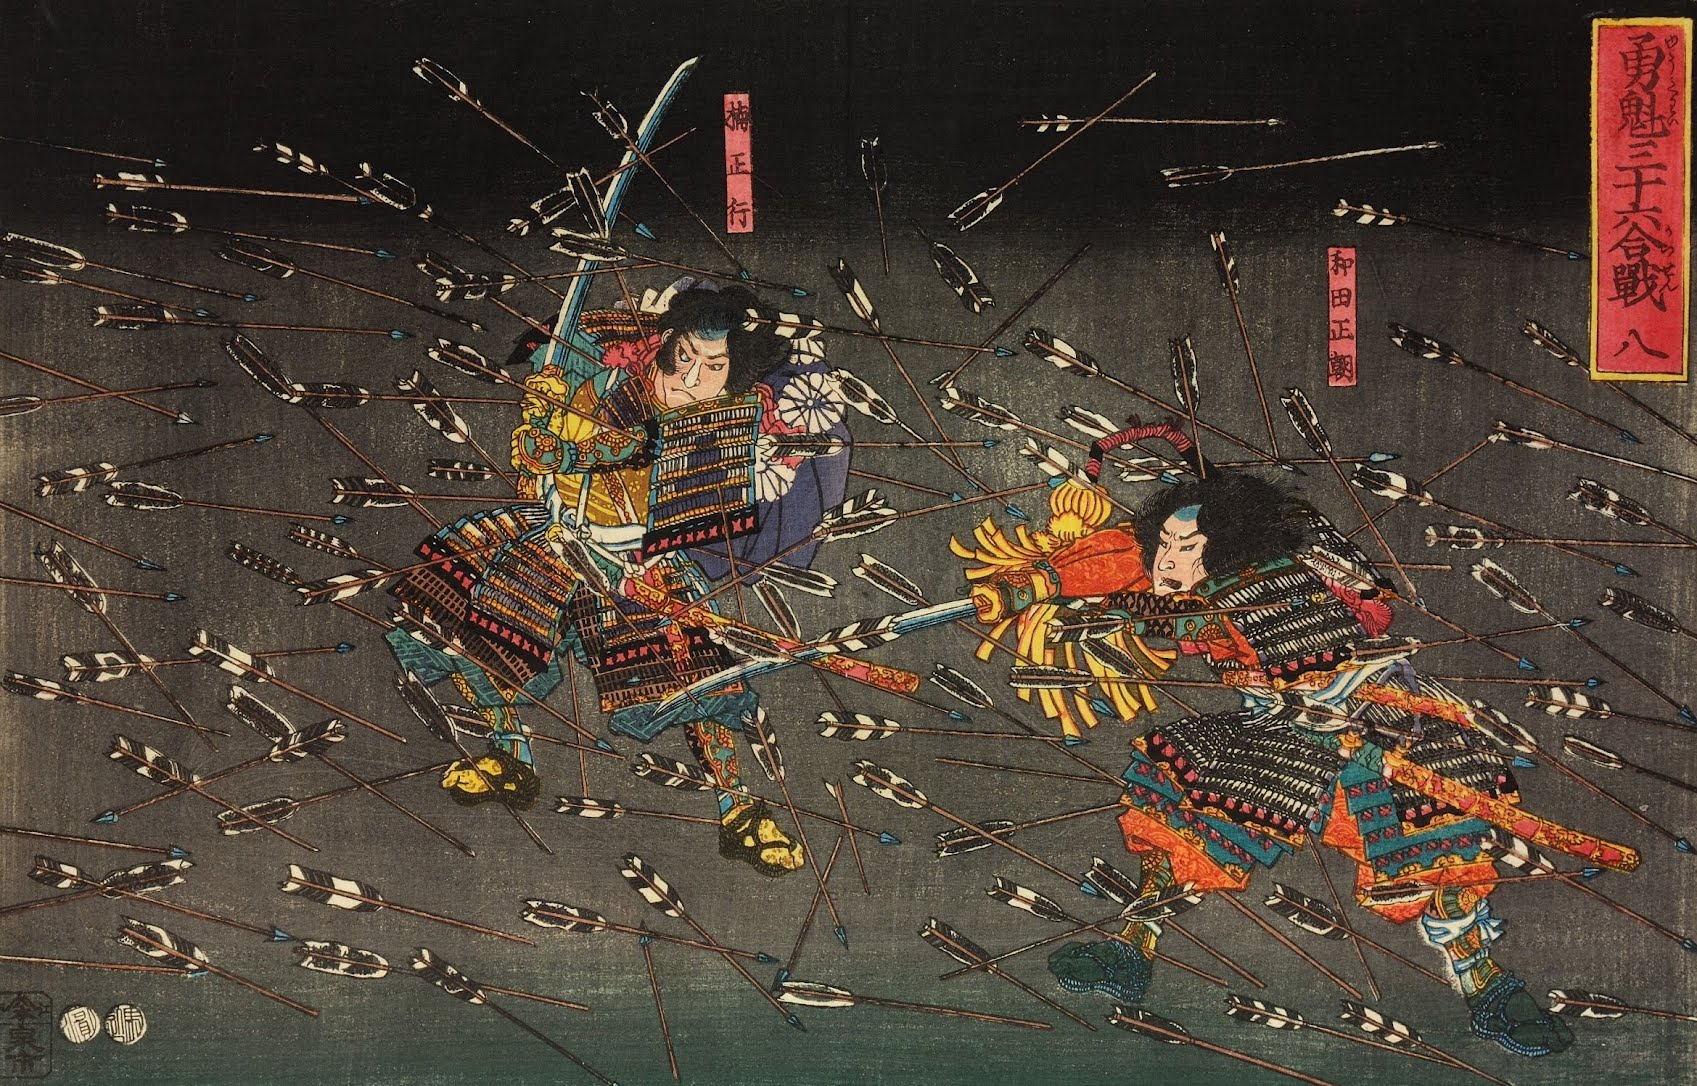 tale of the heike essay Free essay: 11/28/12 hist485 honor-shame code in the tale of heike in the tale of heike, the way in which the japanese viewed defeat and dying is revealed to.